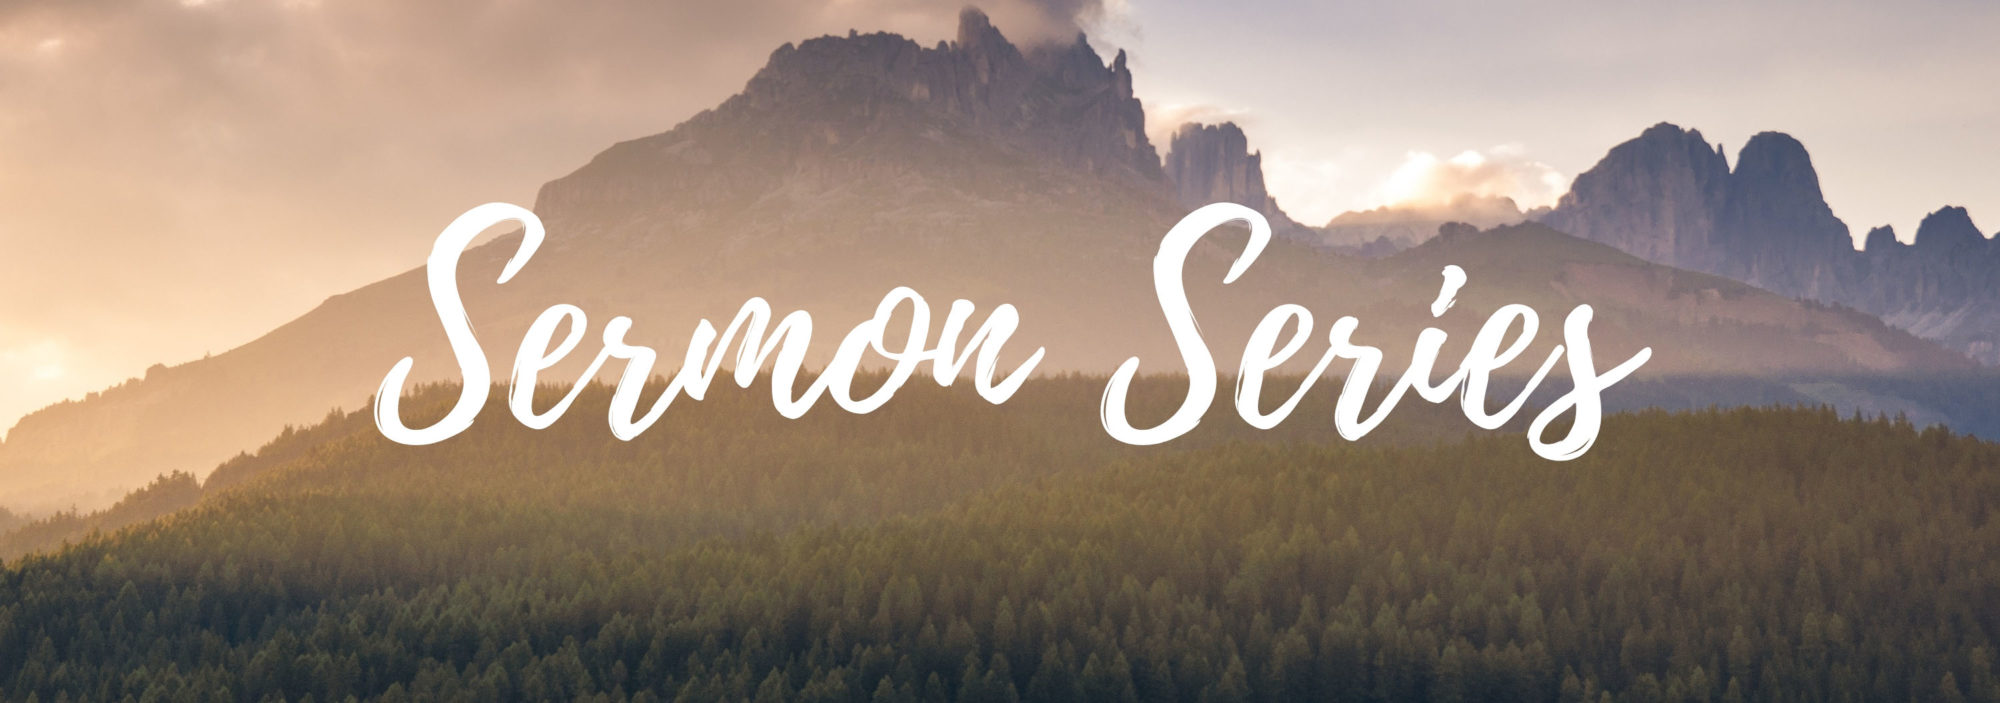 Sermon series | Grove Church